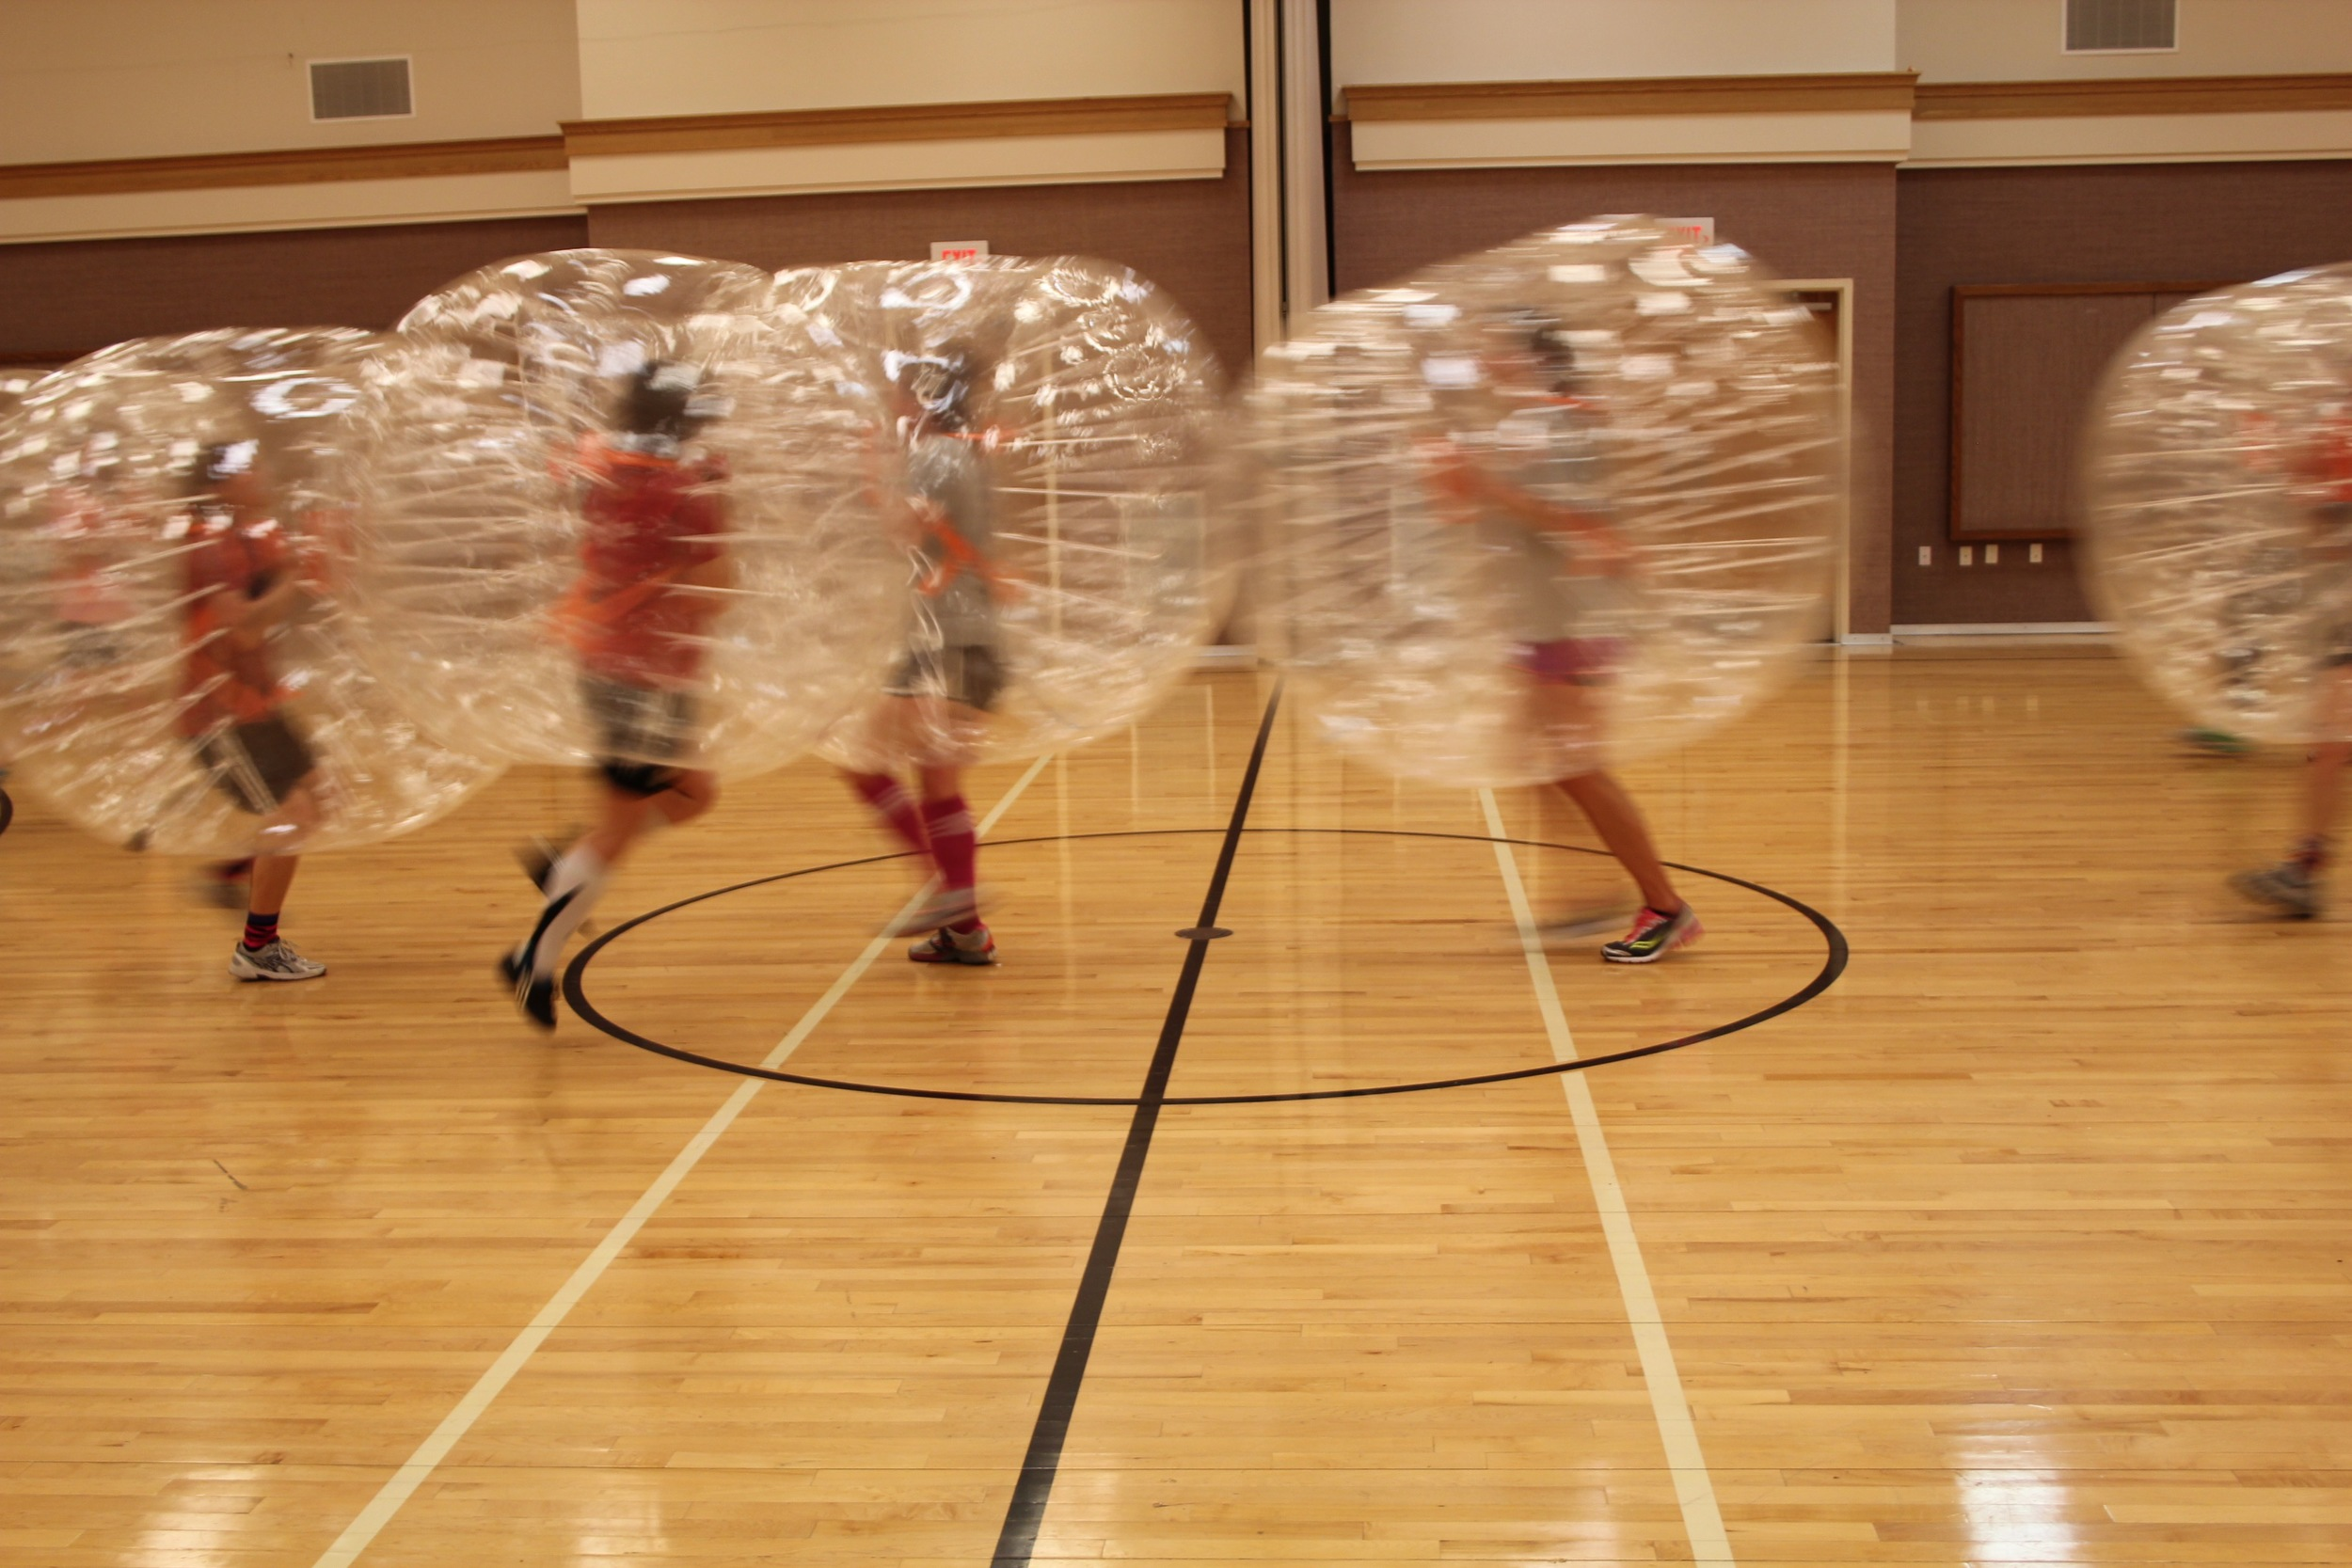 Boomerang Bubble Soccer Crash.jpg